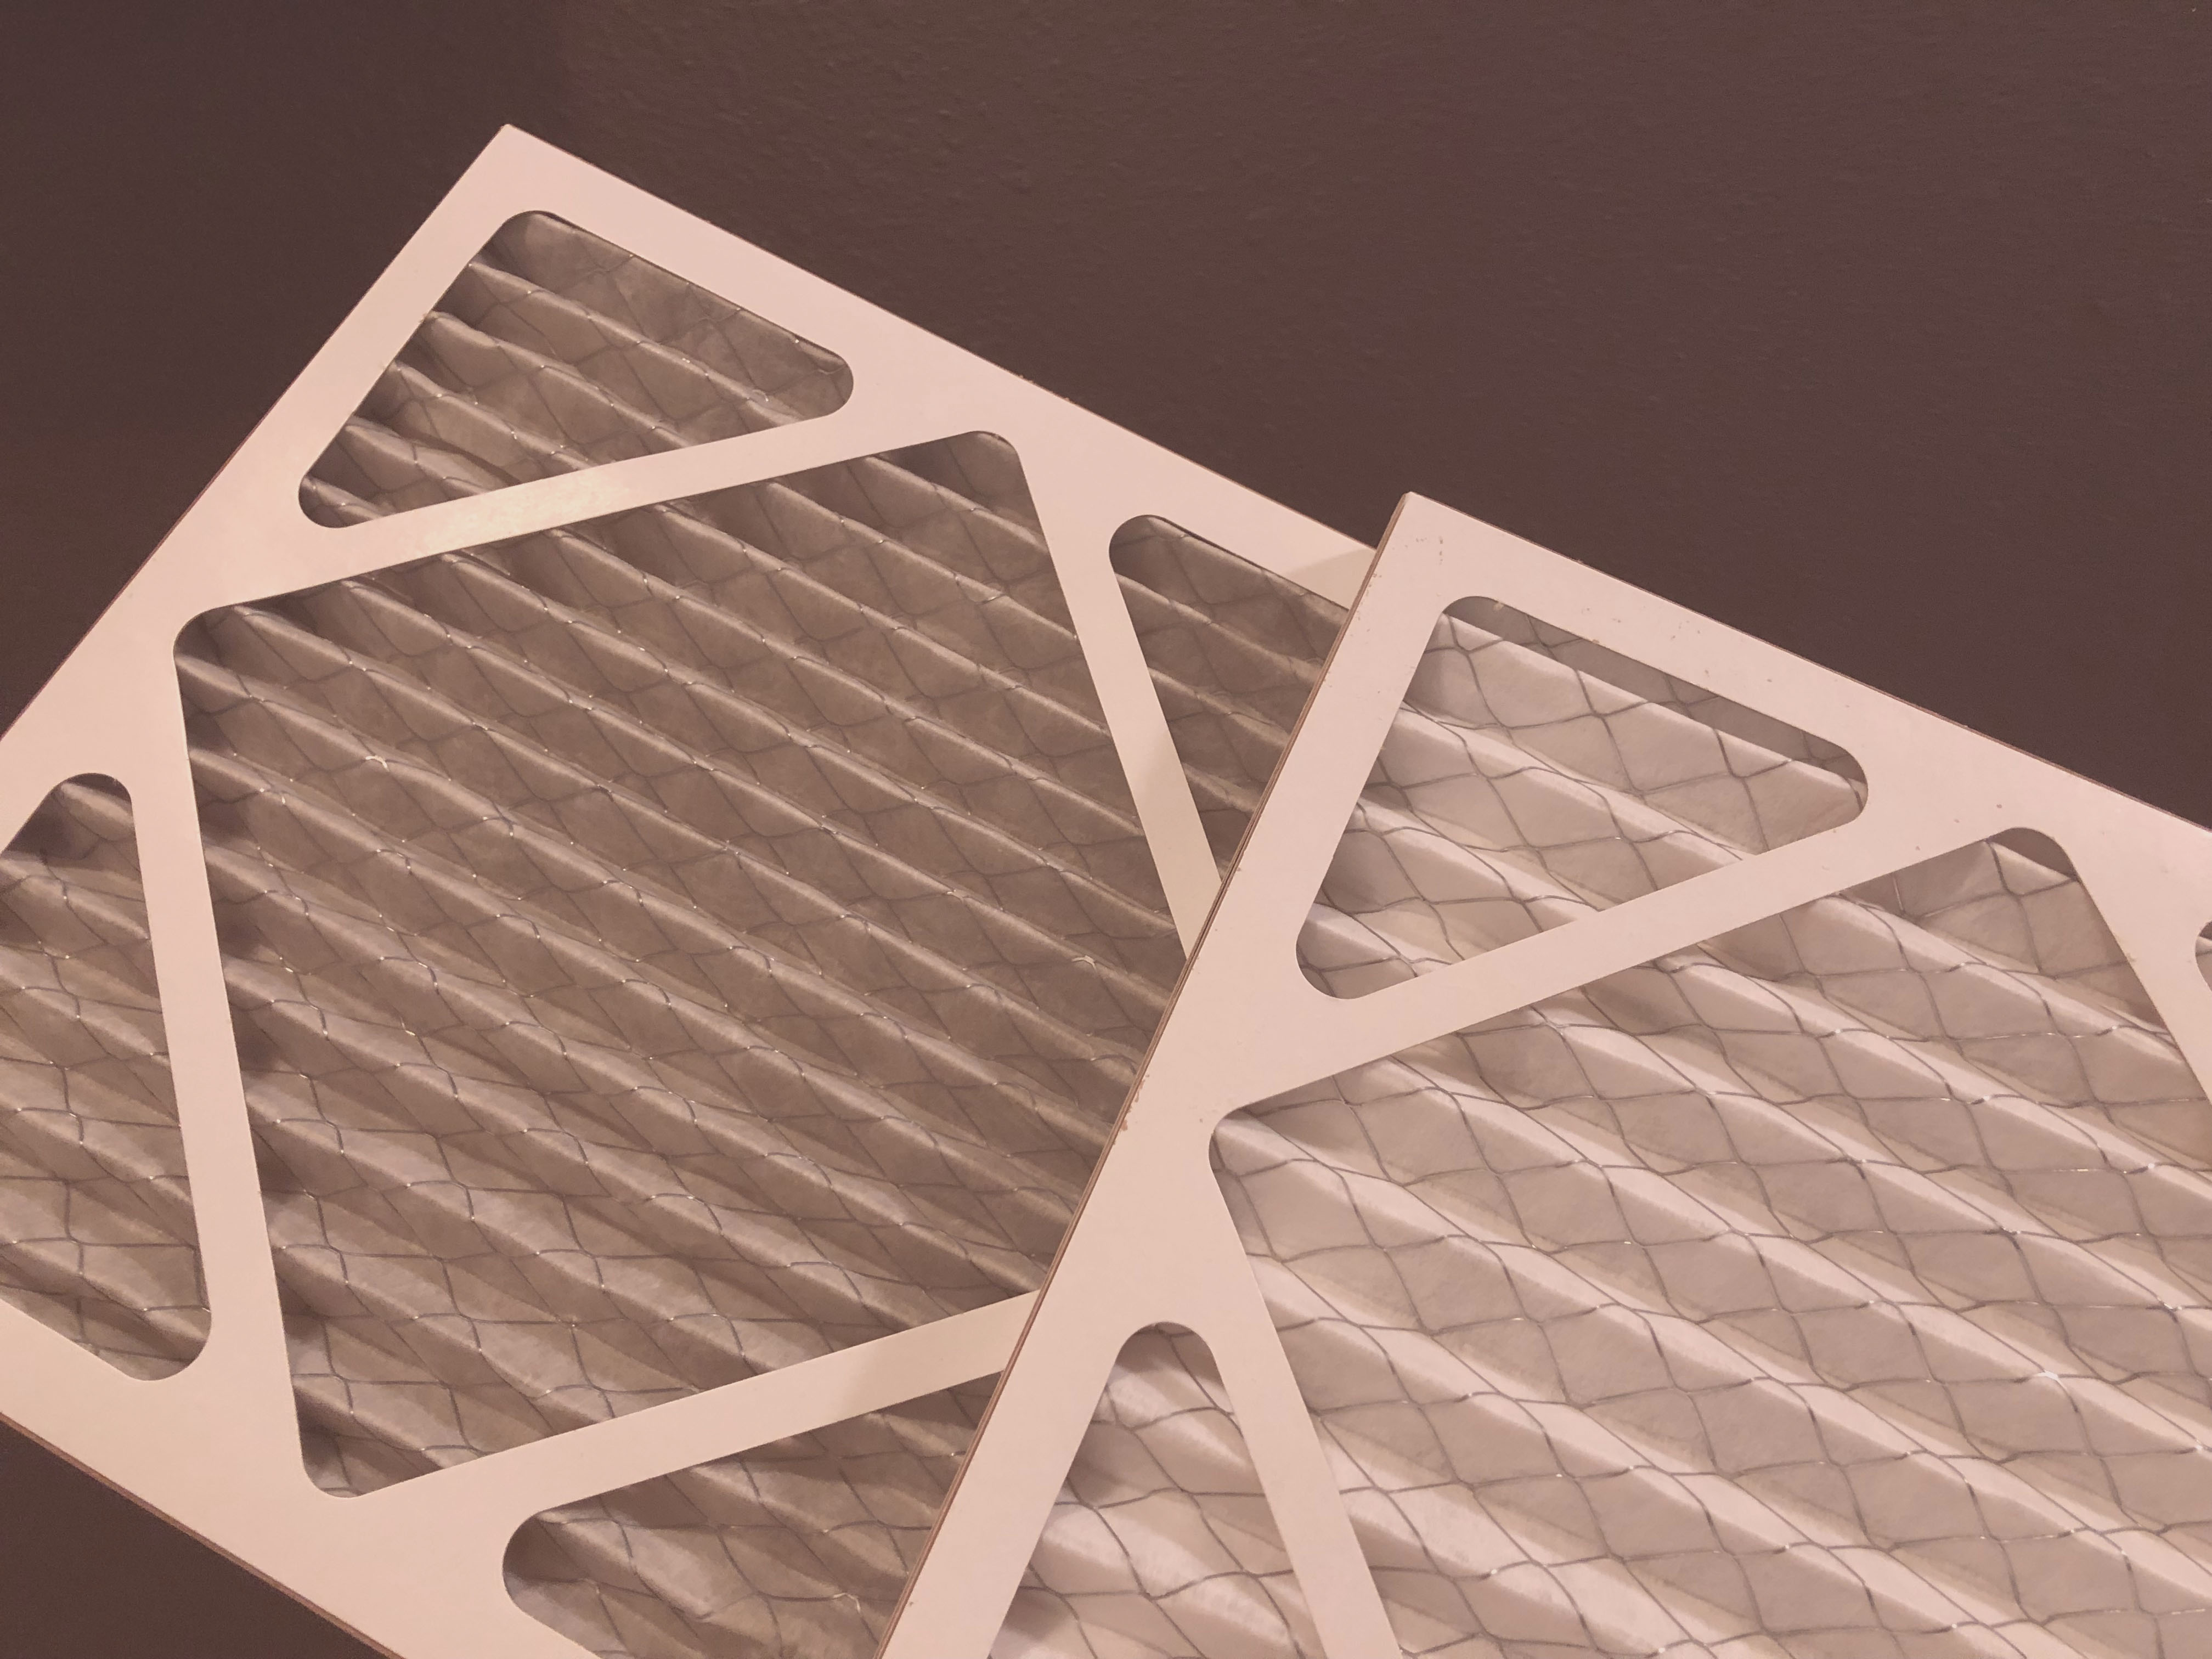 Air filters stacked